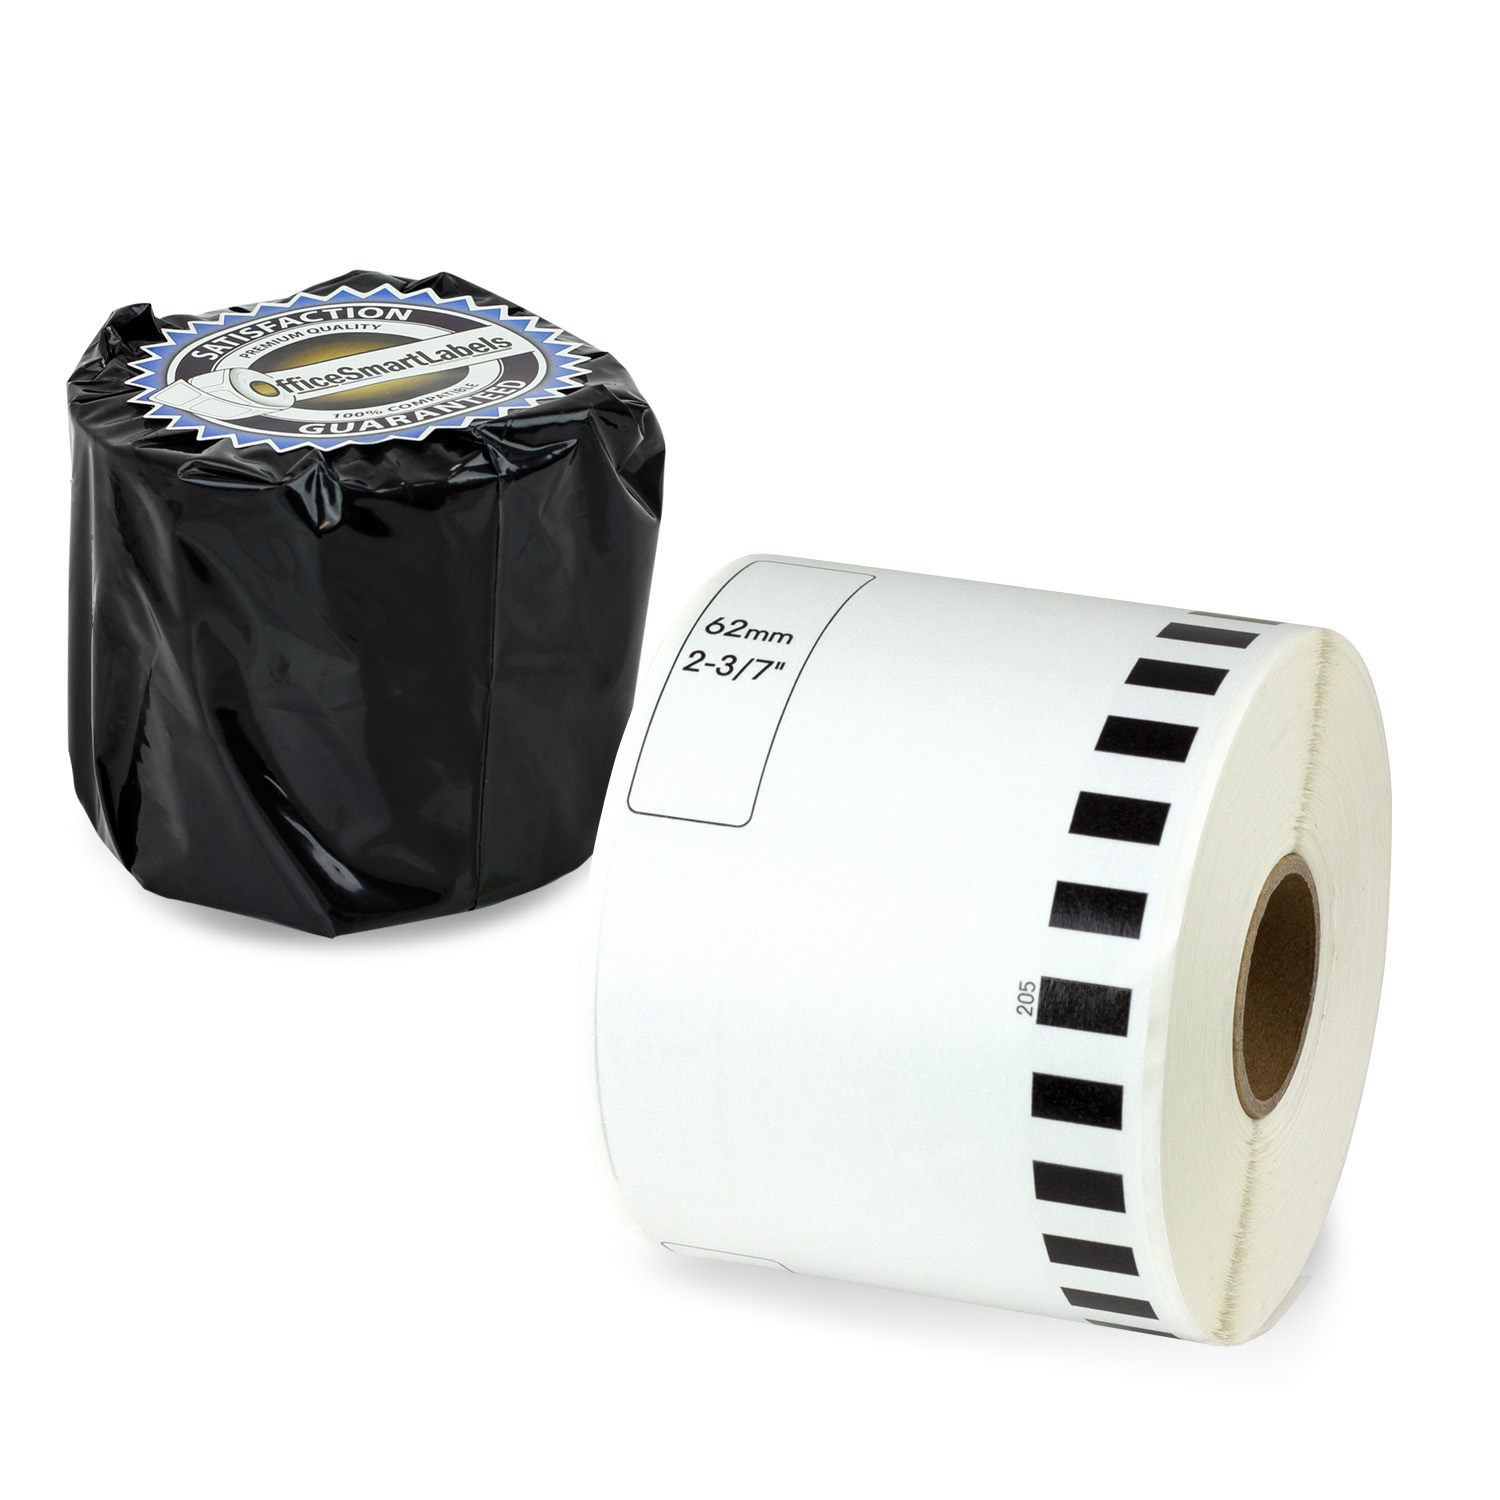 "Brother Compatible DK-2205 Continuous Labels (2-3/7"" x 100 ft) - Without Cartridge 